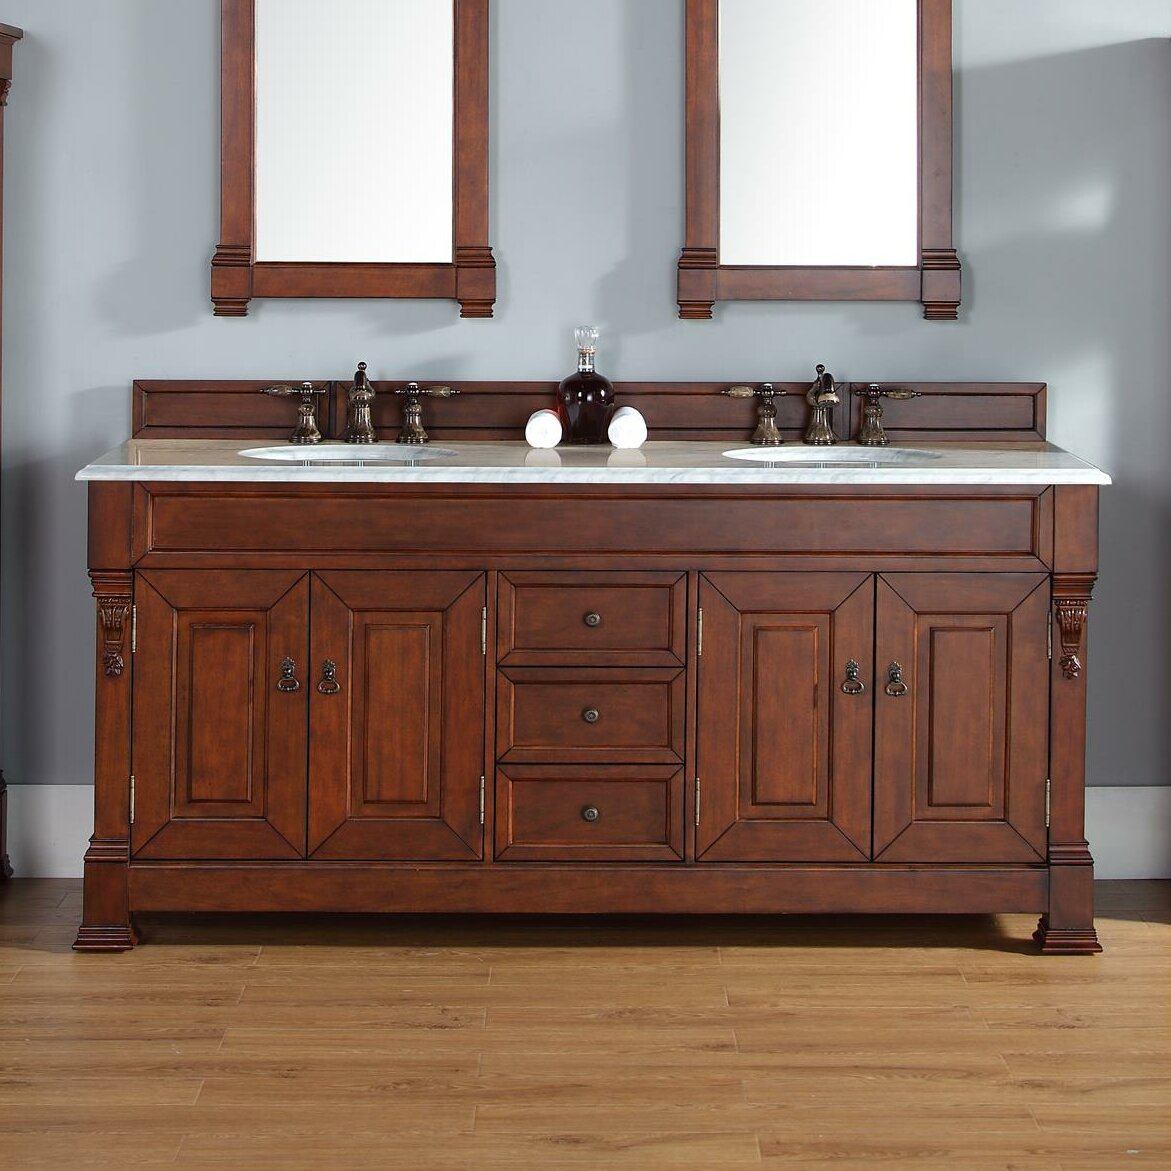 Country bathroom vanity - Bedrock 72 Double Country Oak Bathroom Vanity Set With Drawers